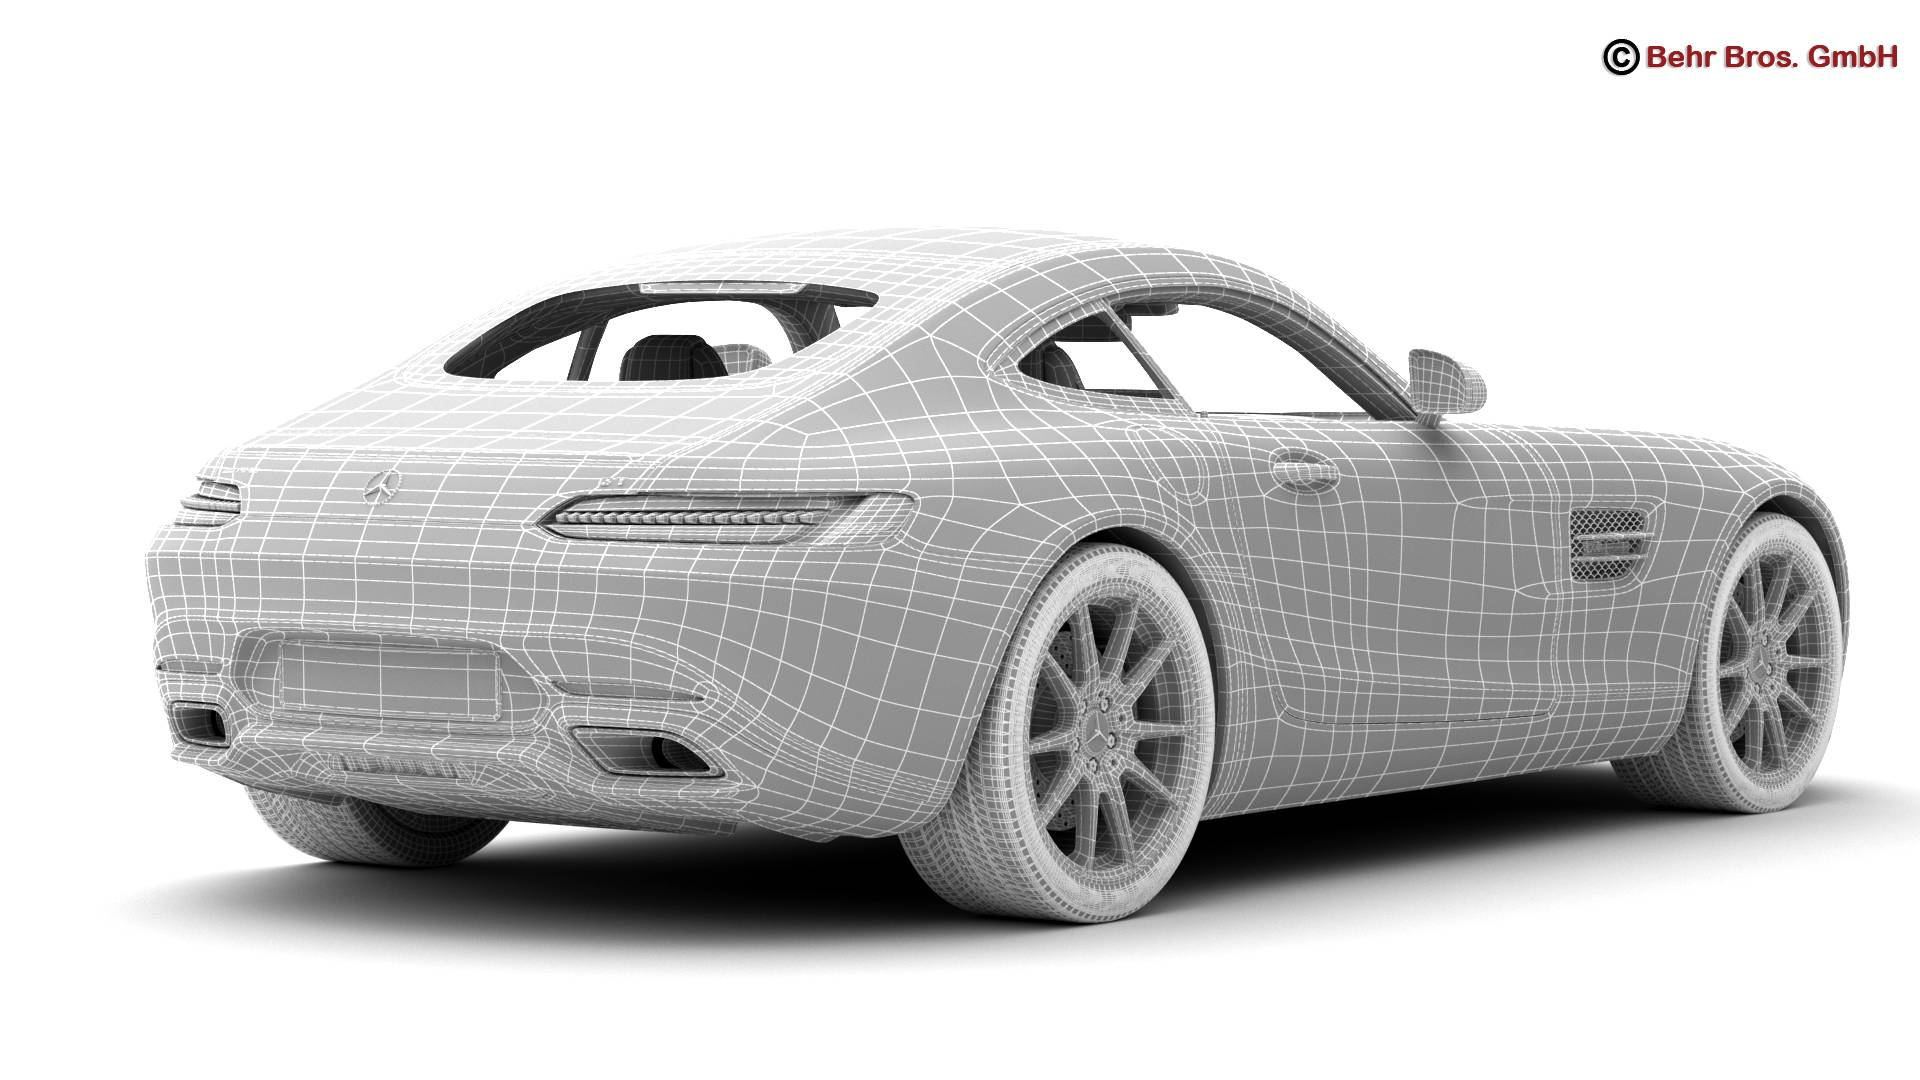 mercedes amg gt 2015 eu and us version 3d model 3ds max fbx c4d lwo ma mb obj 210130